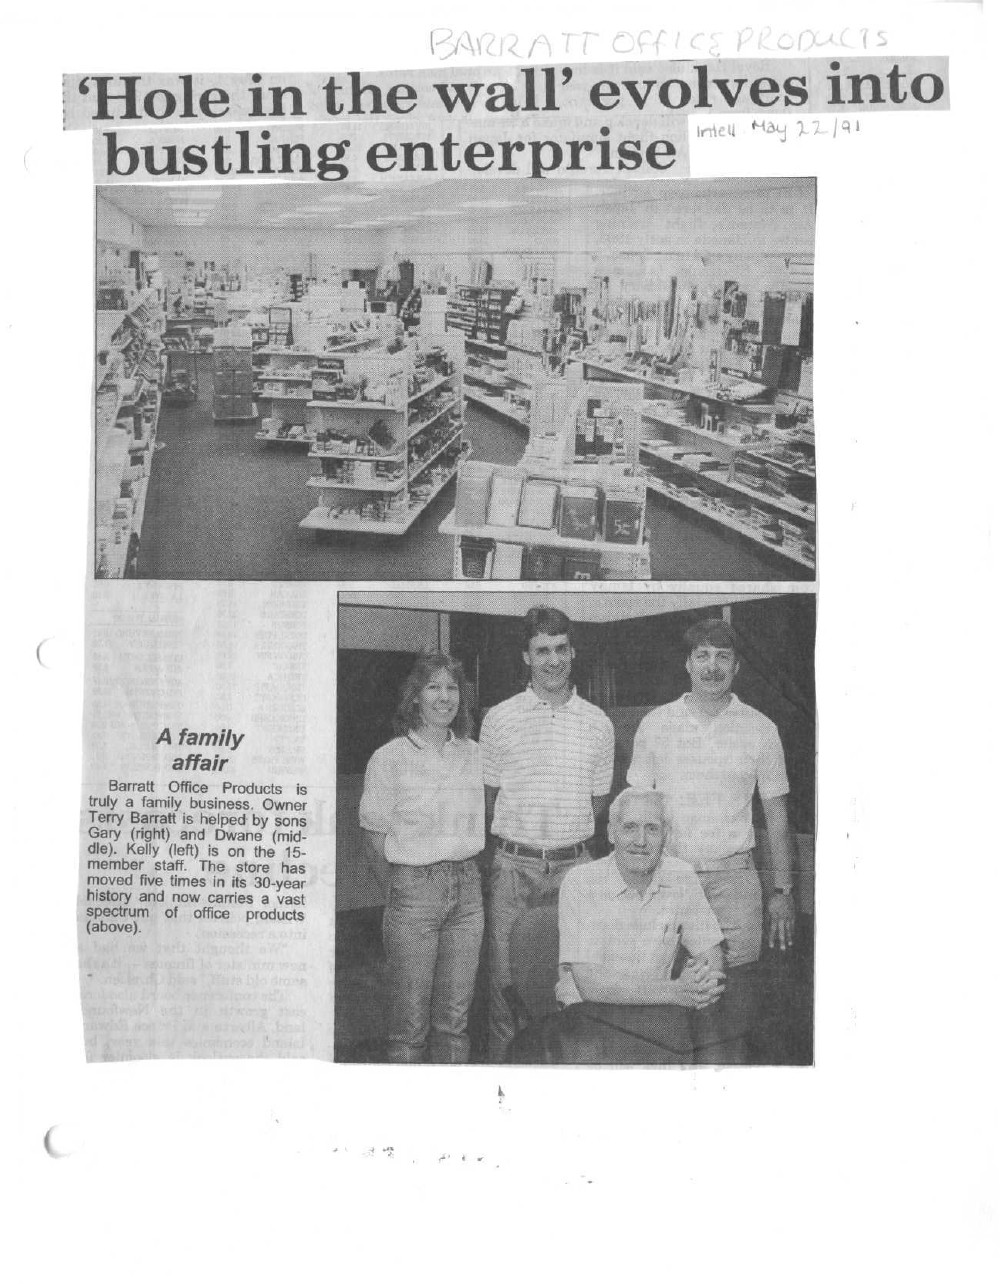 Family ties mean much to business: Barratt Office Products